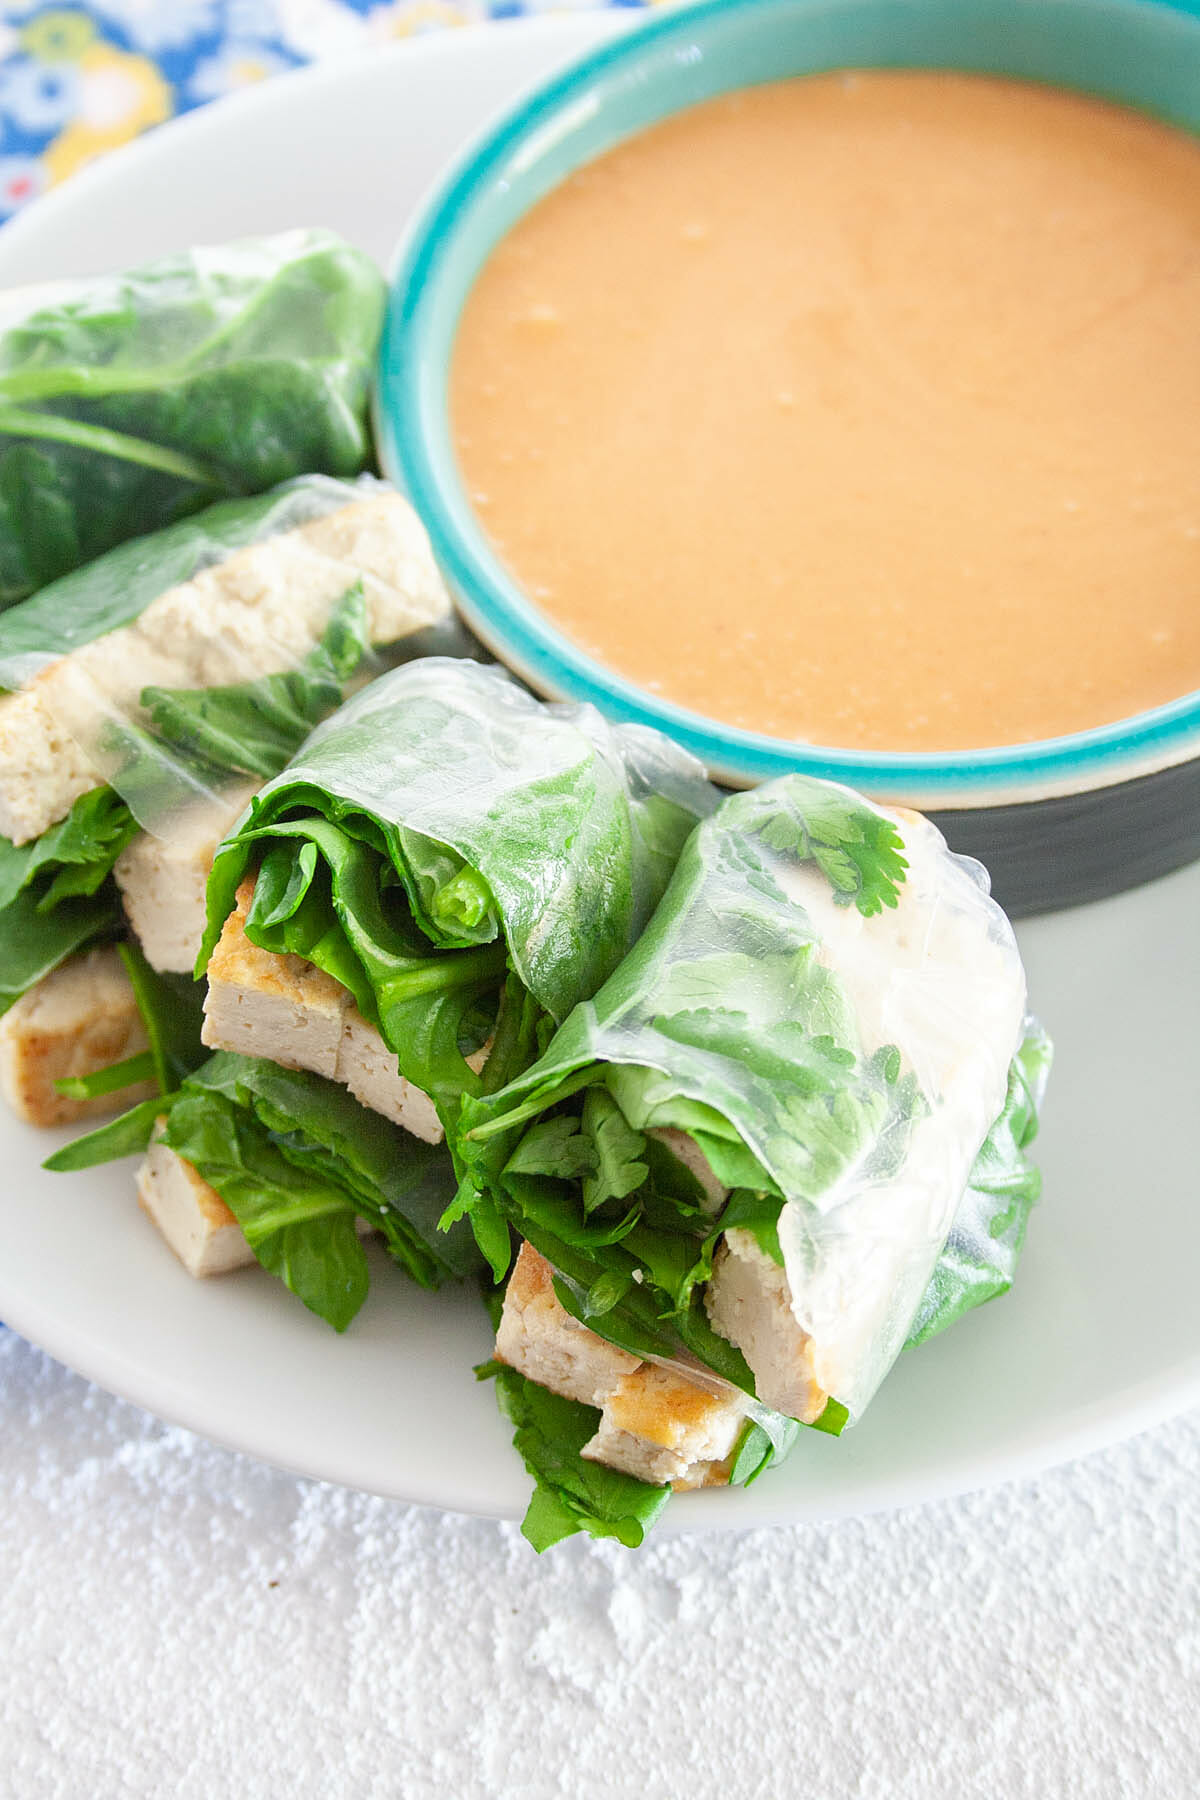 Tofu Spring Rolls with Peanut Dipping Sauce on plate.